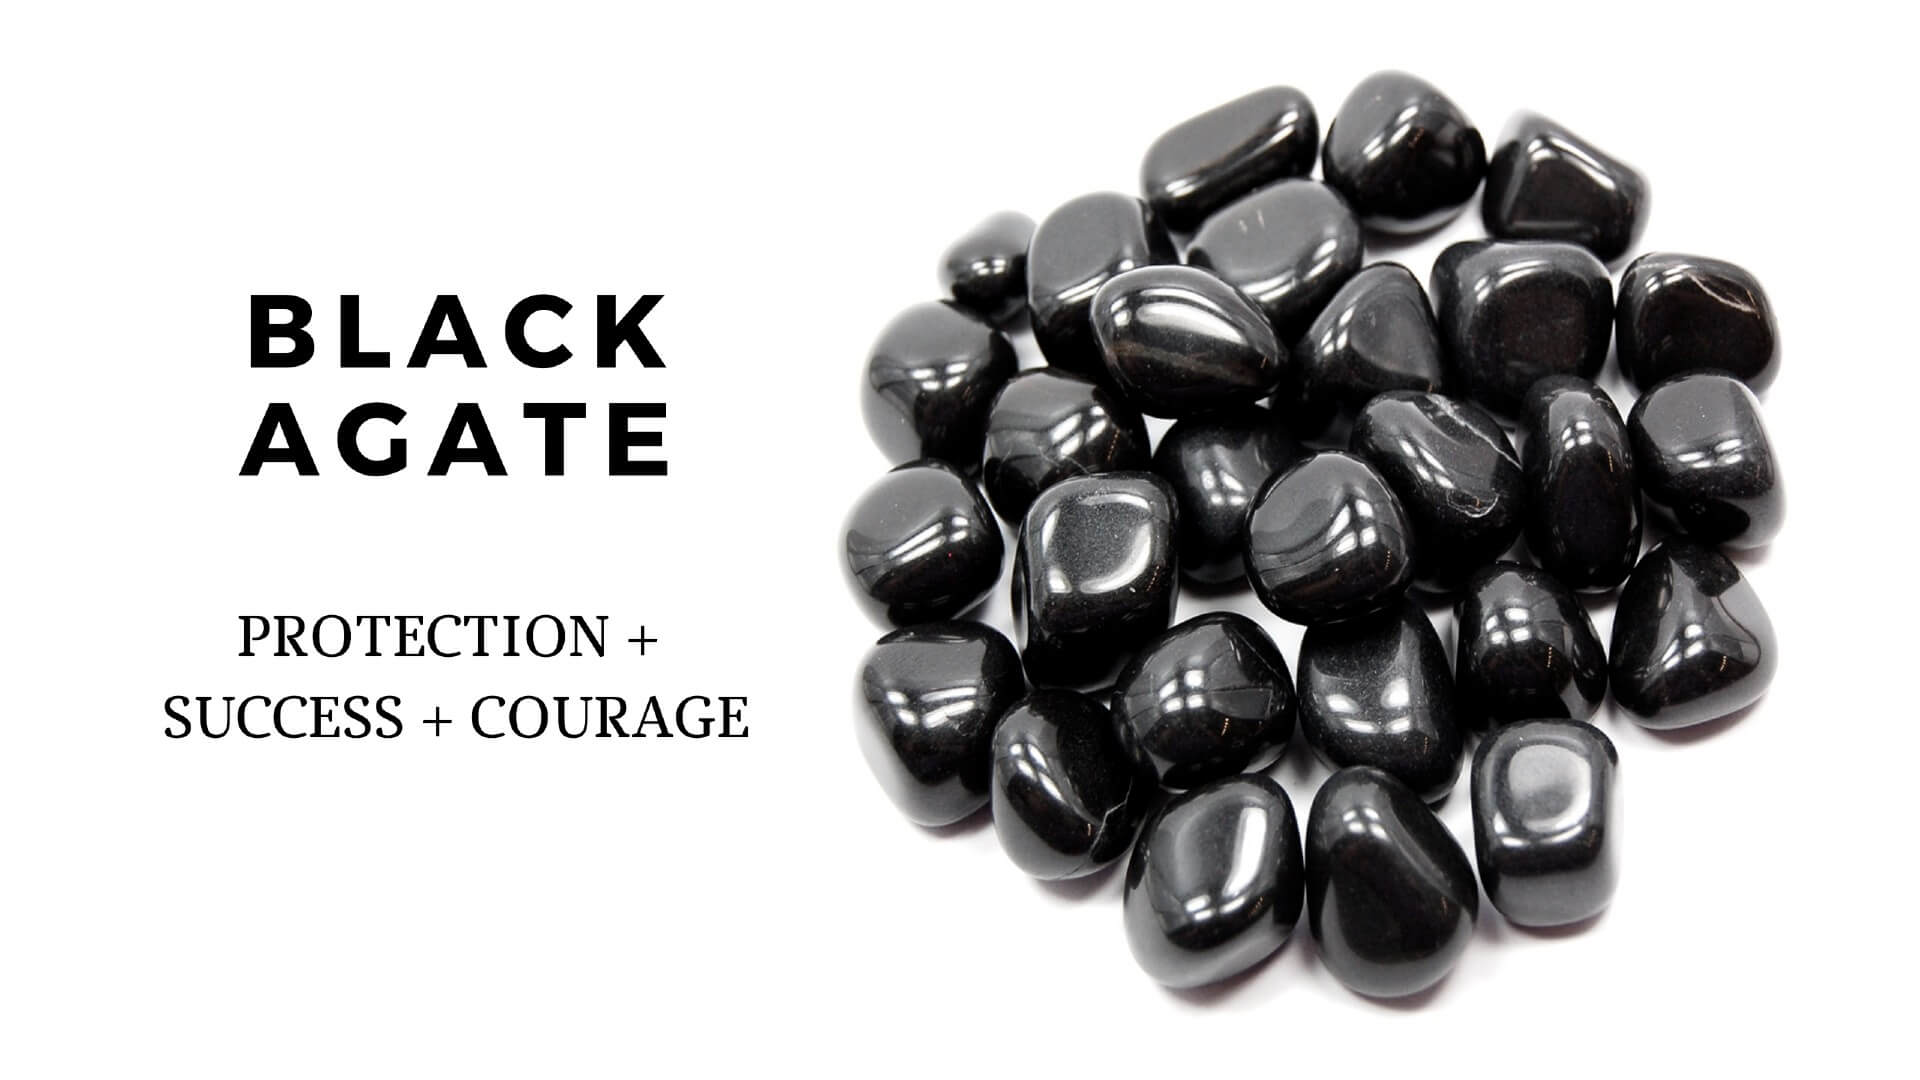 Black Agate Healing Properties | Black Agate Meaning | Benefits Of Black Agate - Magic Crystals